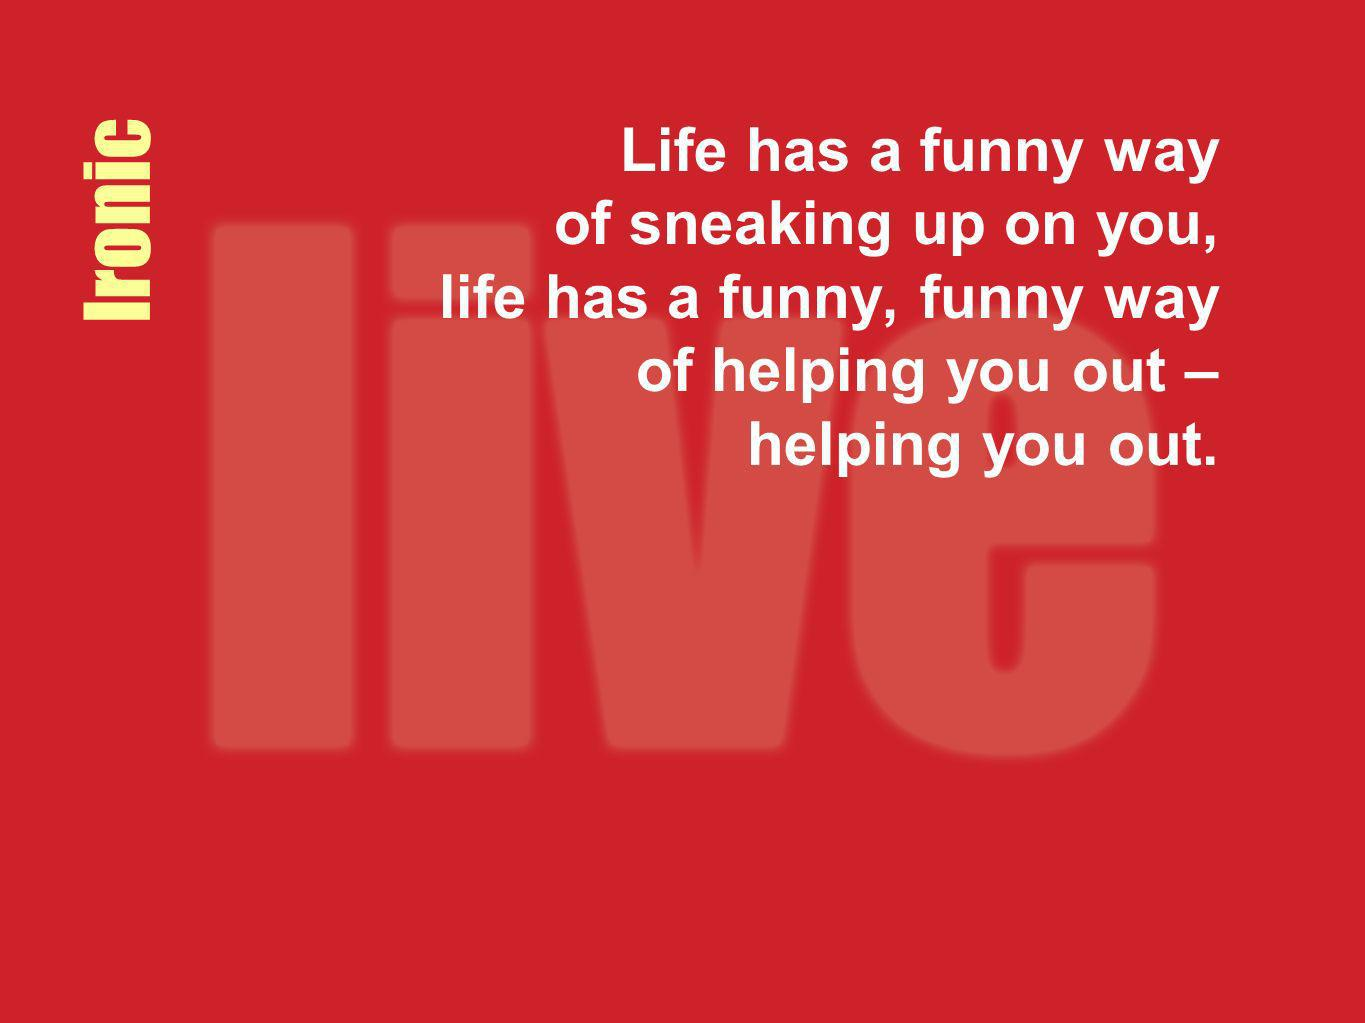 Life has a funny way of sneaking up on you, life has a funny, funny way of helping you out – helping you out.